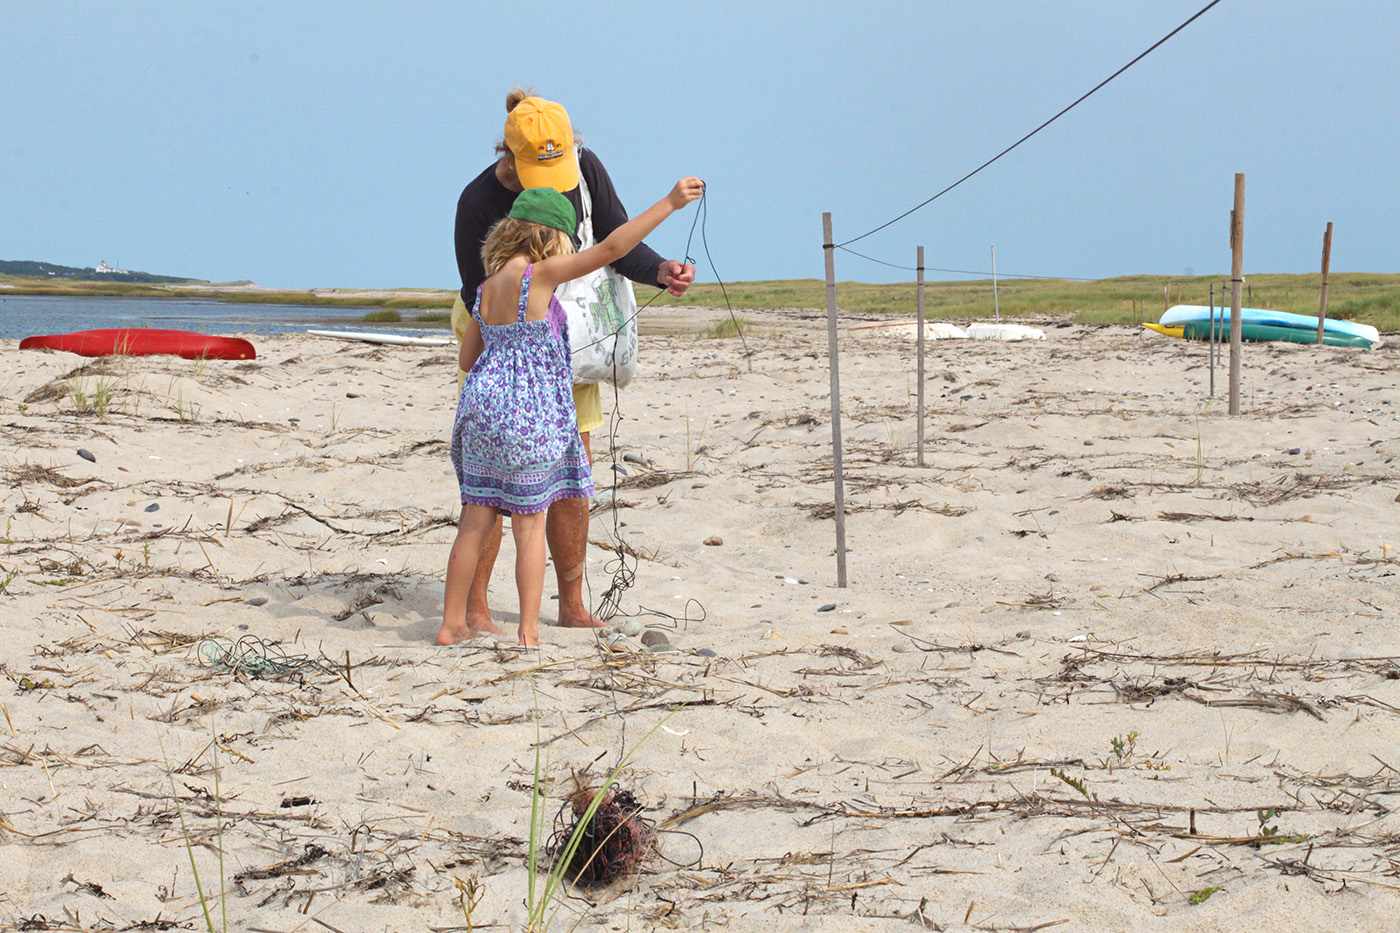 beach twine knits by Marnie Campbell, photo by Justine Hand, unraveling the twine